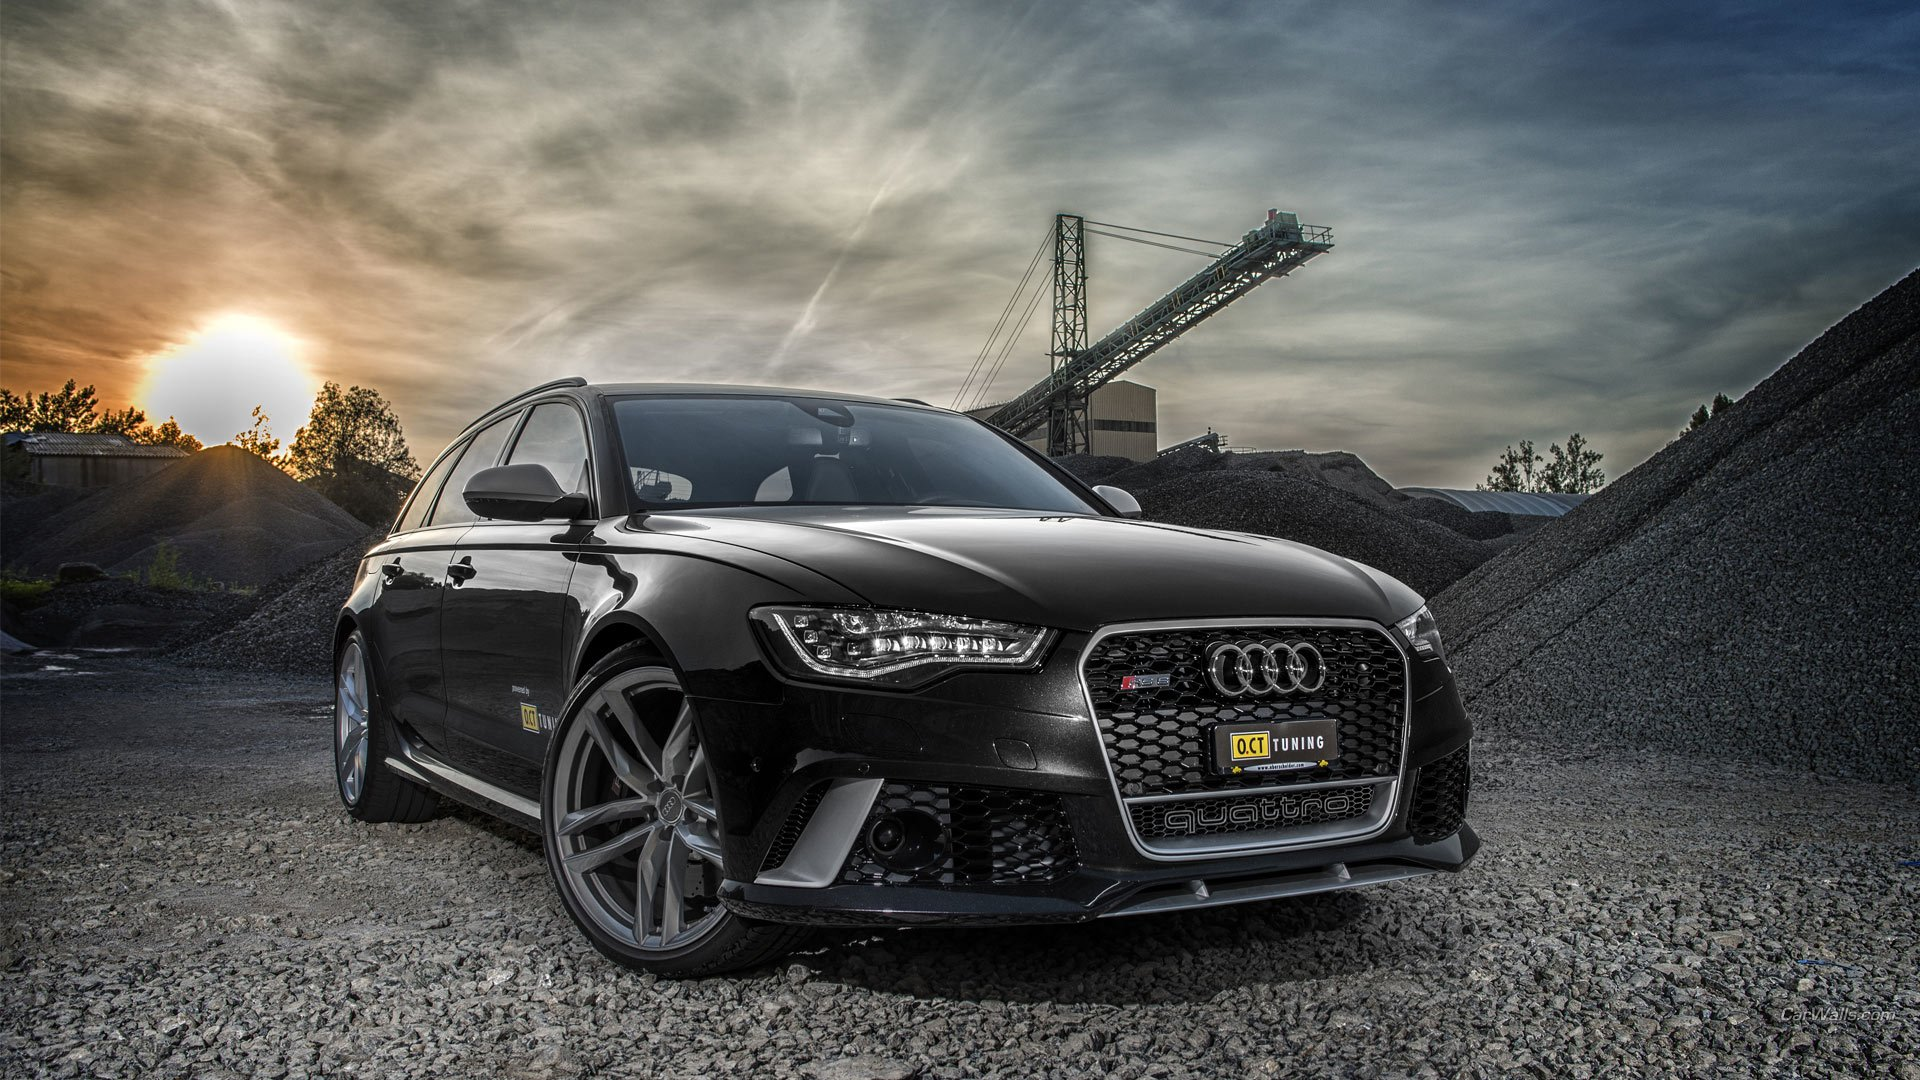 1920x1080 - Audi RS6 Wallpapers 10